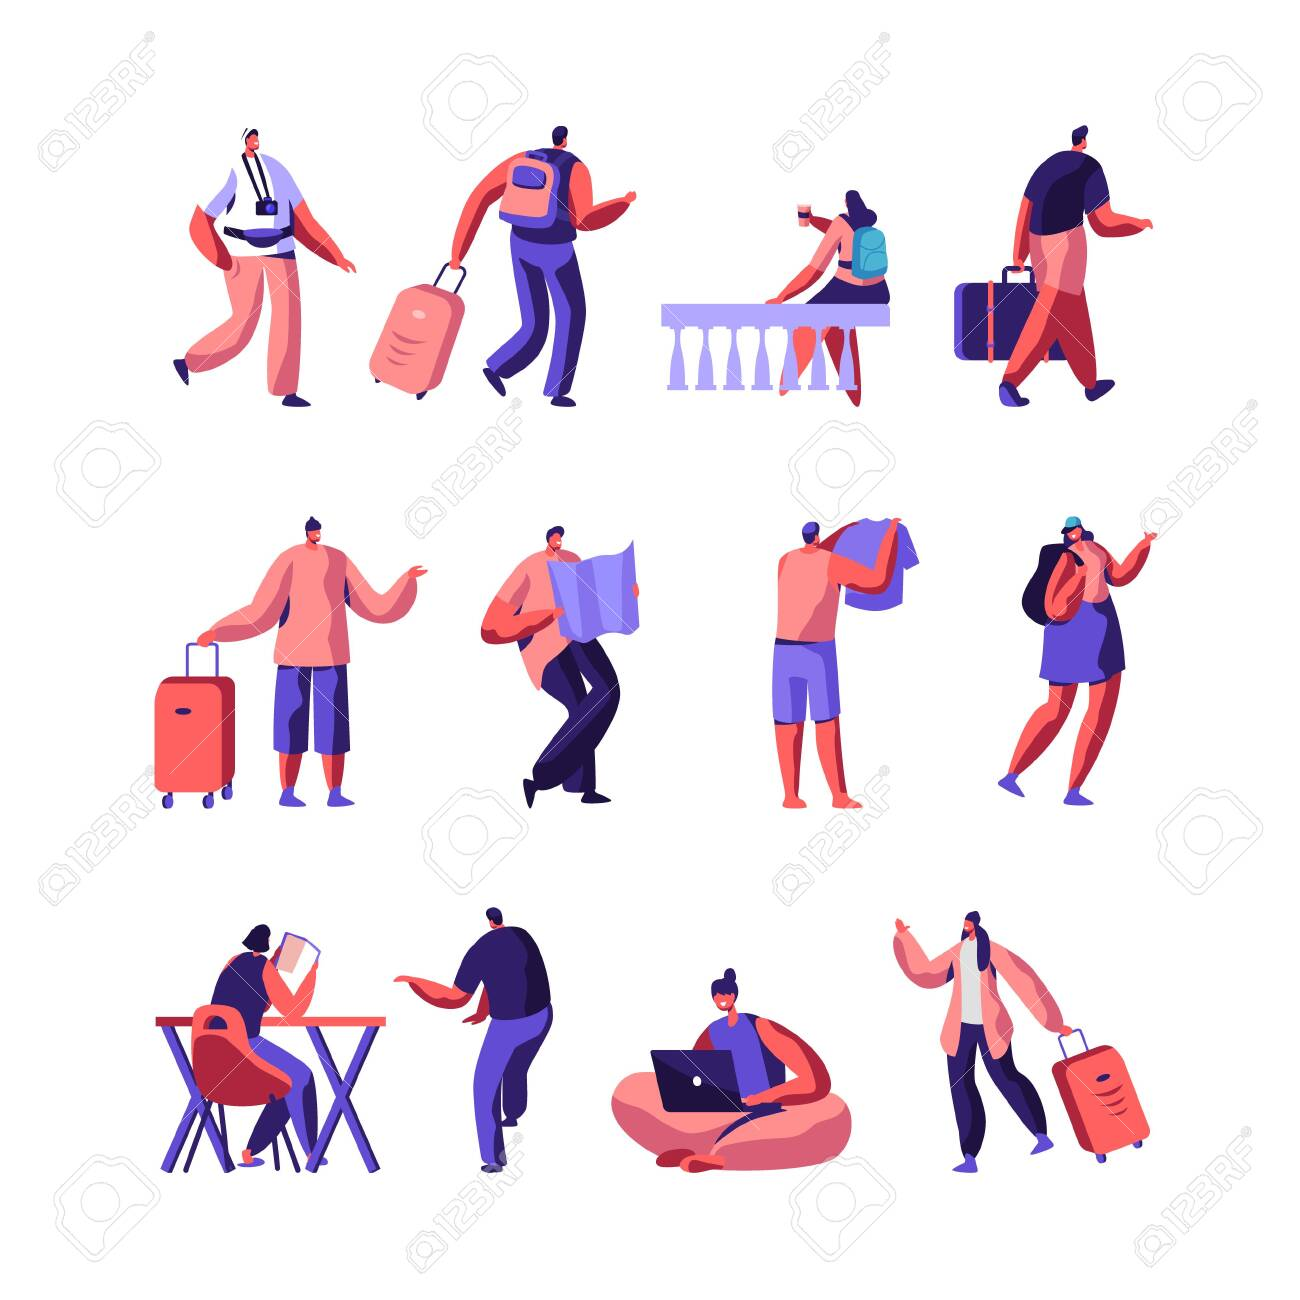 Set of Diverse Young People with Luggage and Maps Traveling and Stay in Hotel or Hostel. Male, Female Tourist Characters Staying at Night, Accommodation for Travelers. Cartoon Flat Vector Illustration - 125556238